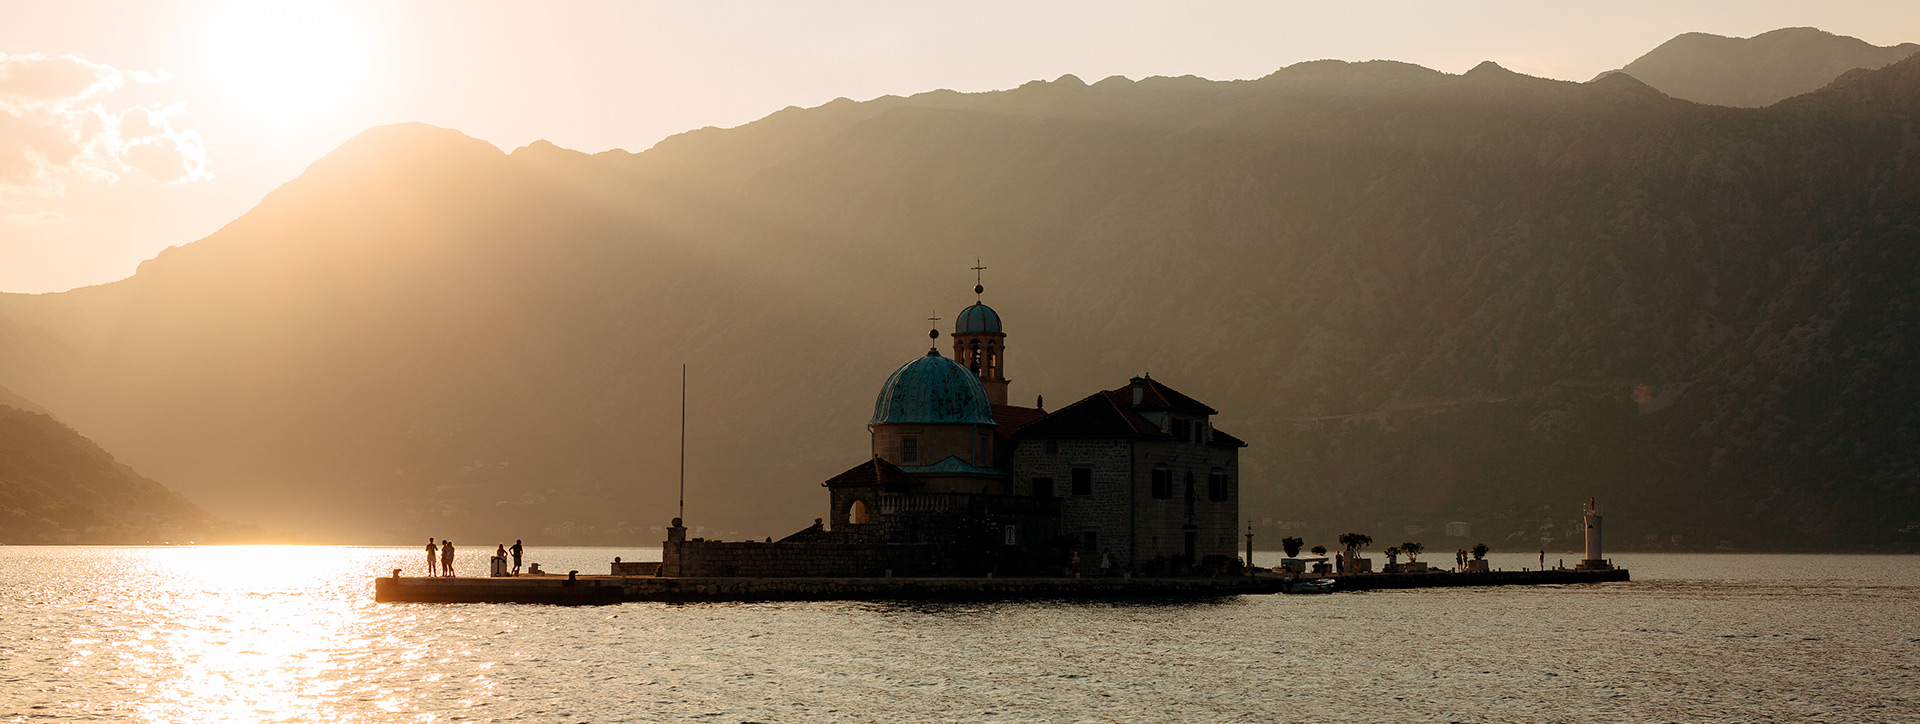 Gospa od Skrpjela - the Island of our lady on the Reef at sunset, in front of Perast, Montenegro - Montenegrin waters SimpleSail sailing routes